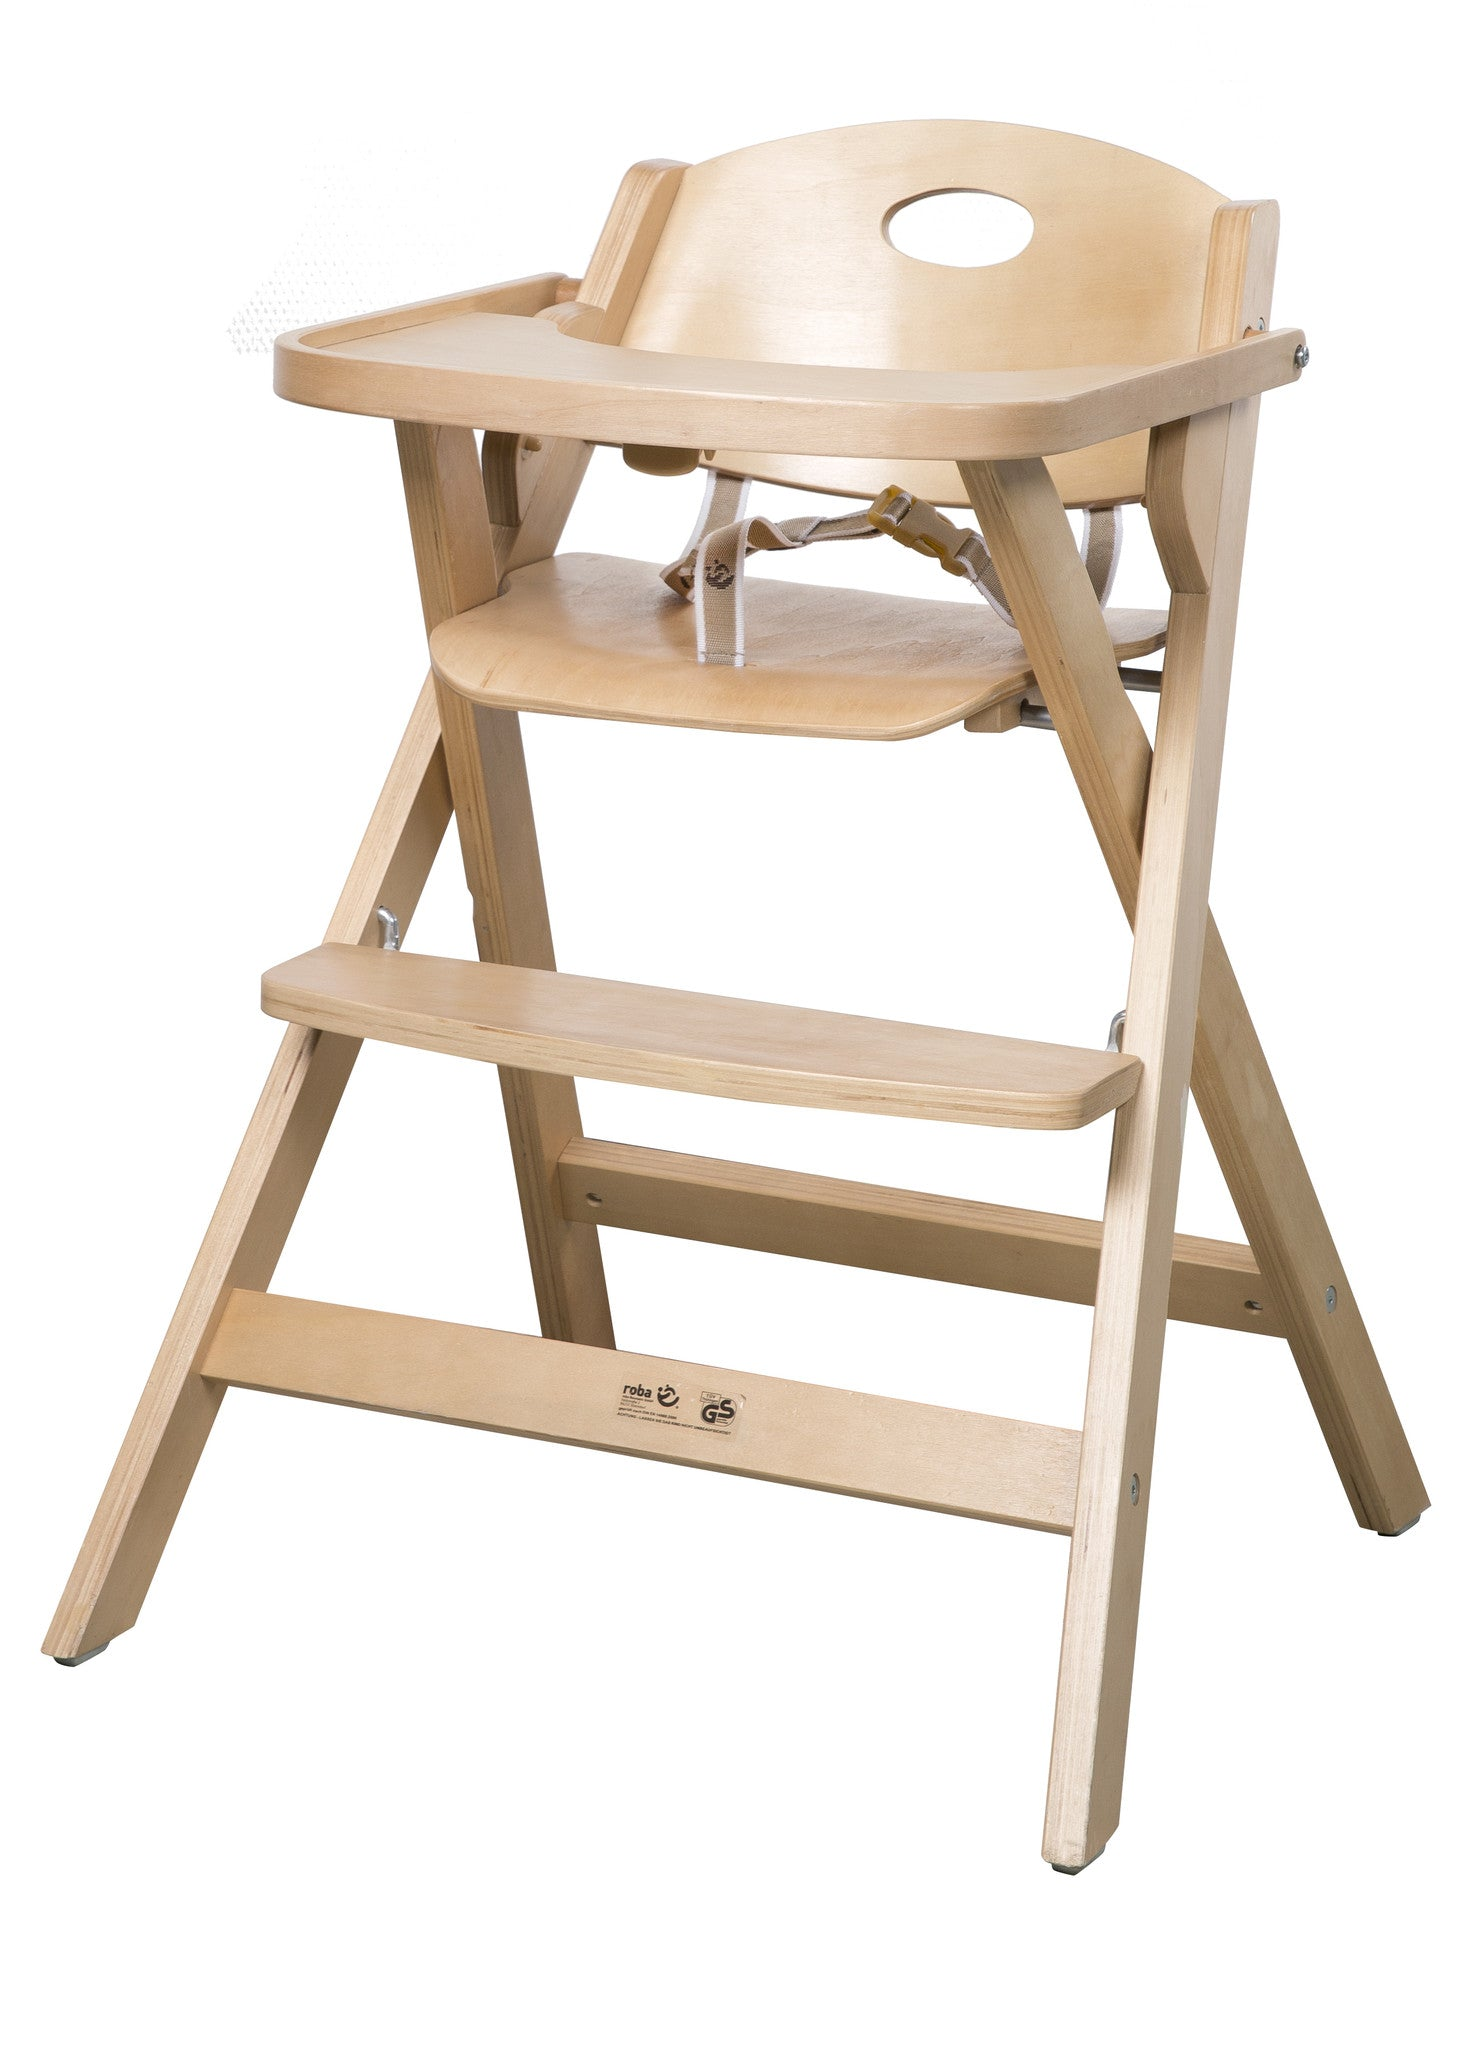 Folding highchair ROBA – Dekoera